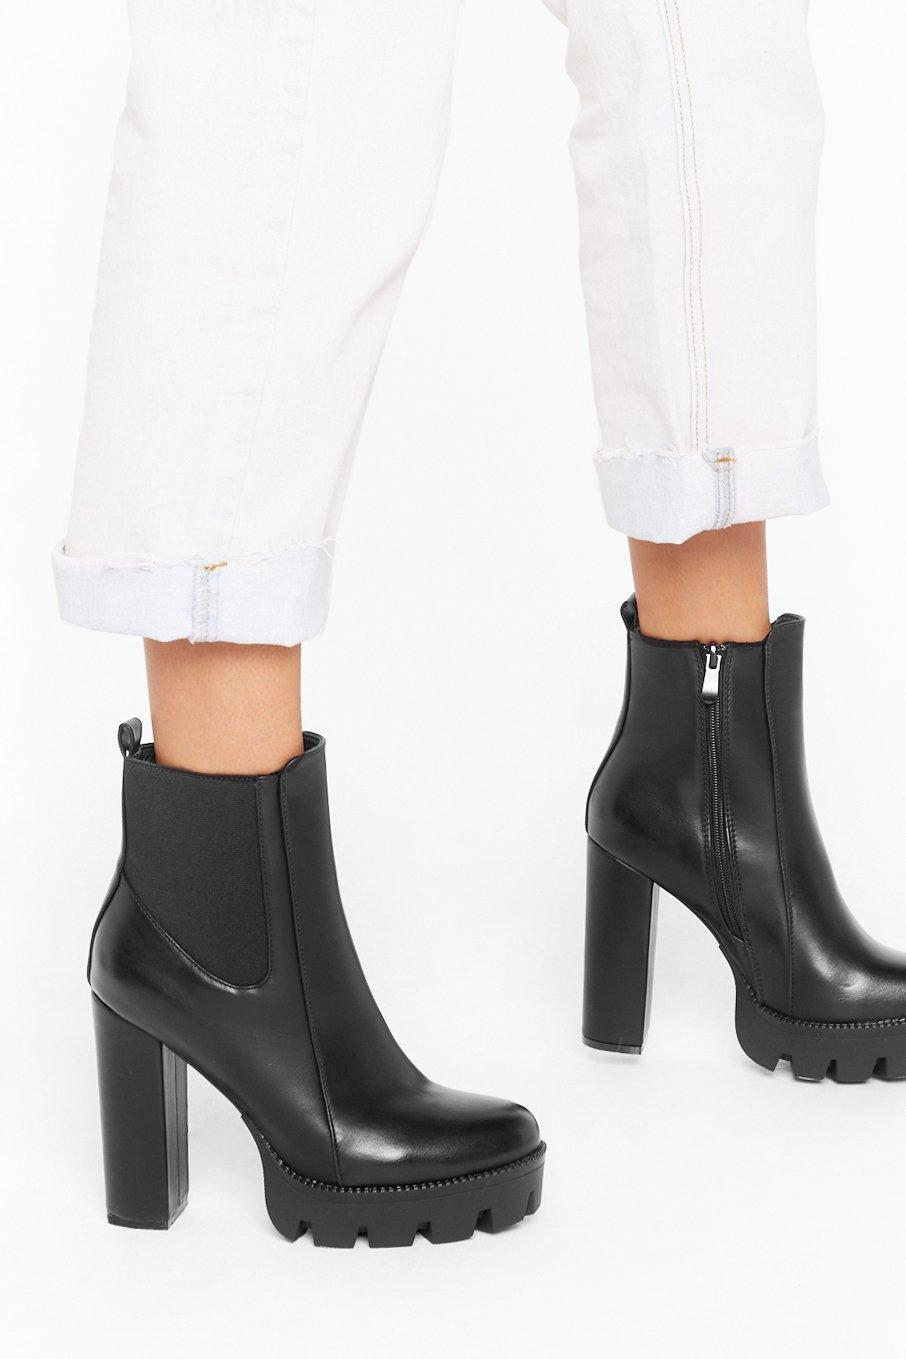 Image of End On a High Note Faux Leather Platform Boots